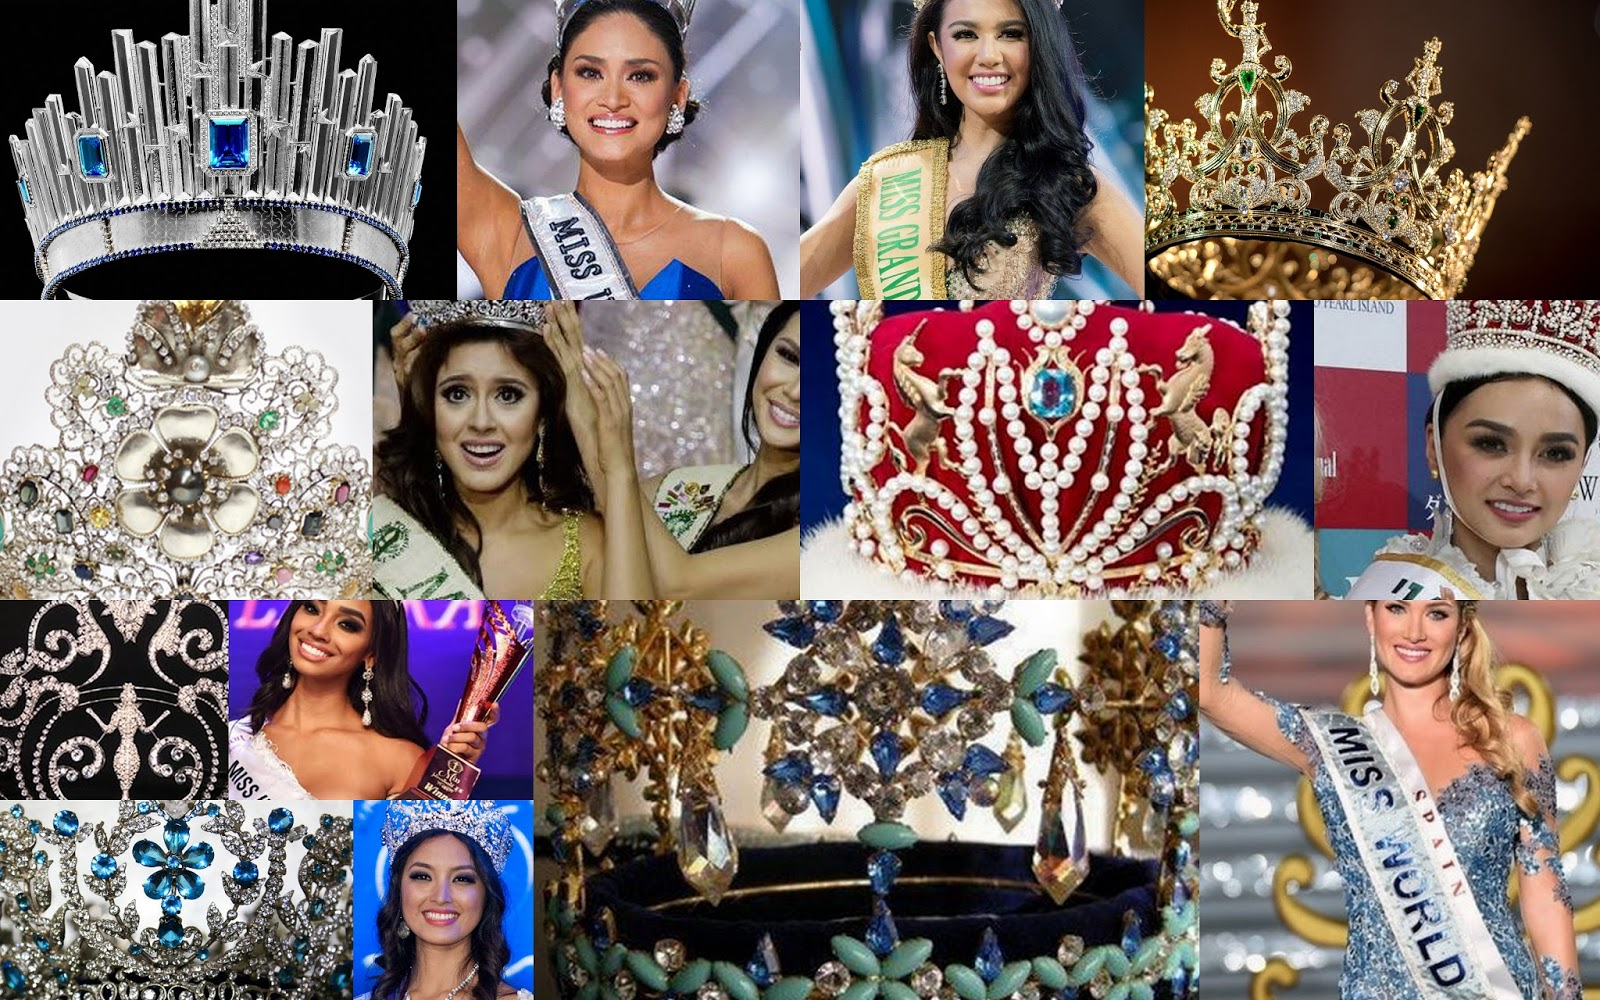 beauty contests harmful what are the benefits of a beauty pageant  interesting facts on the worth of international grand slam 7 grand slam beauty pageants